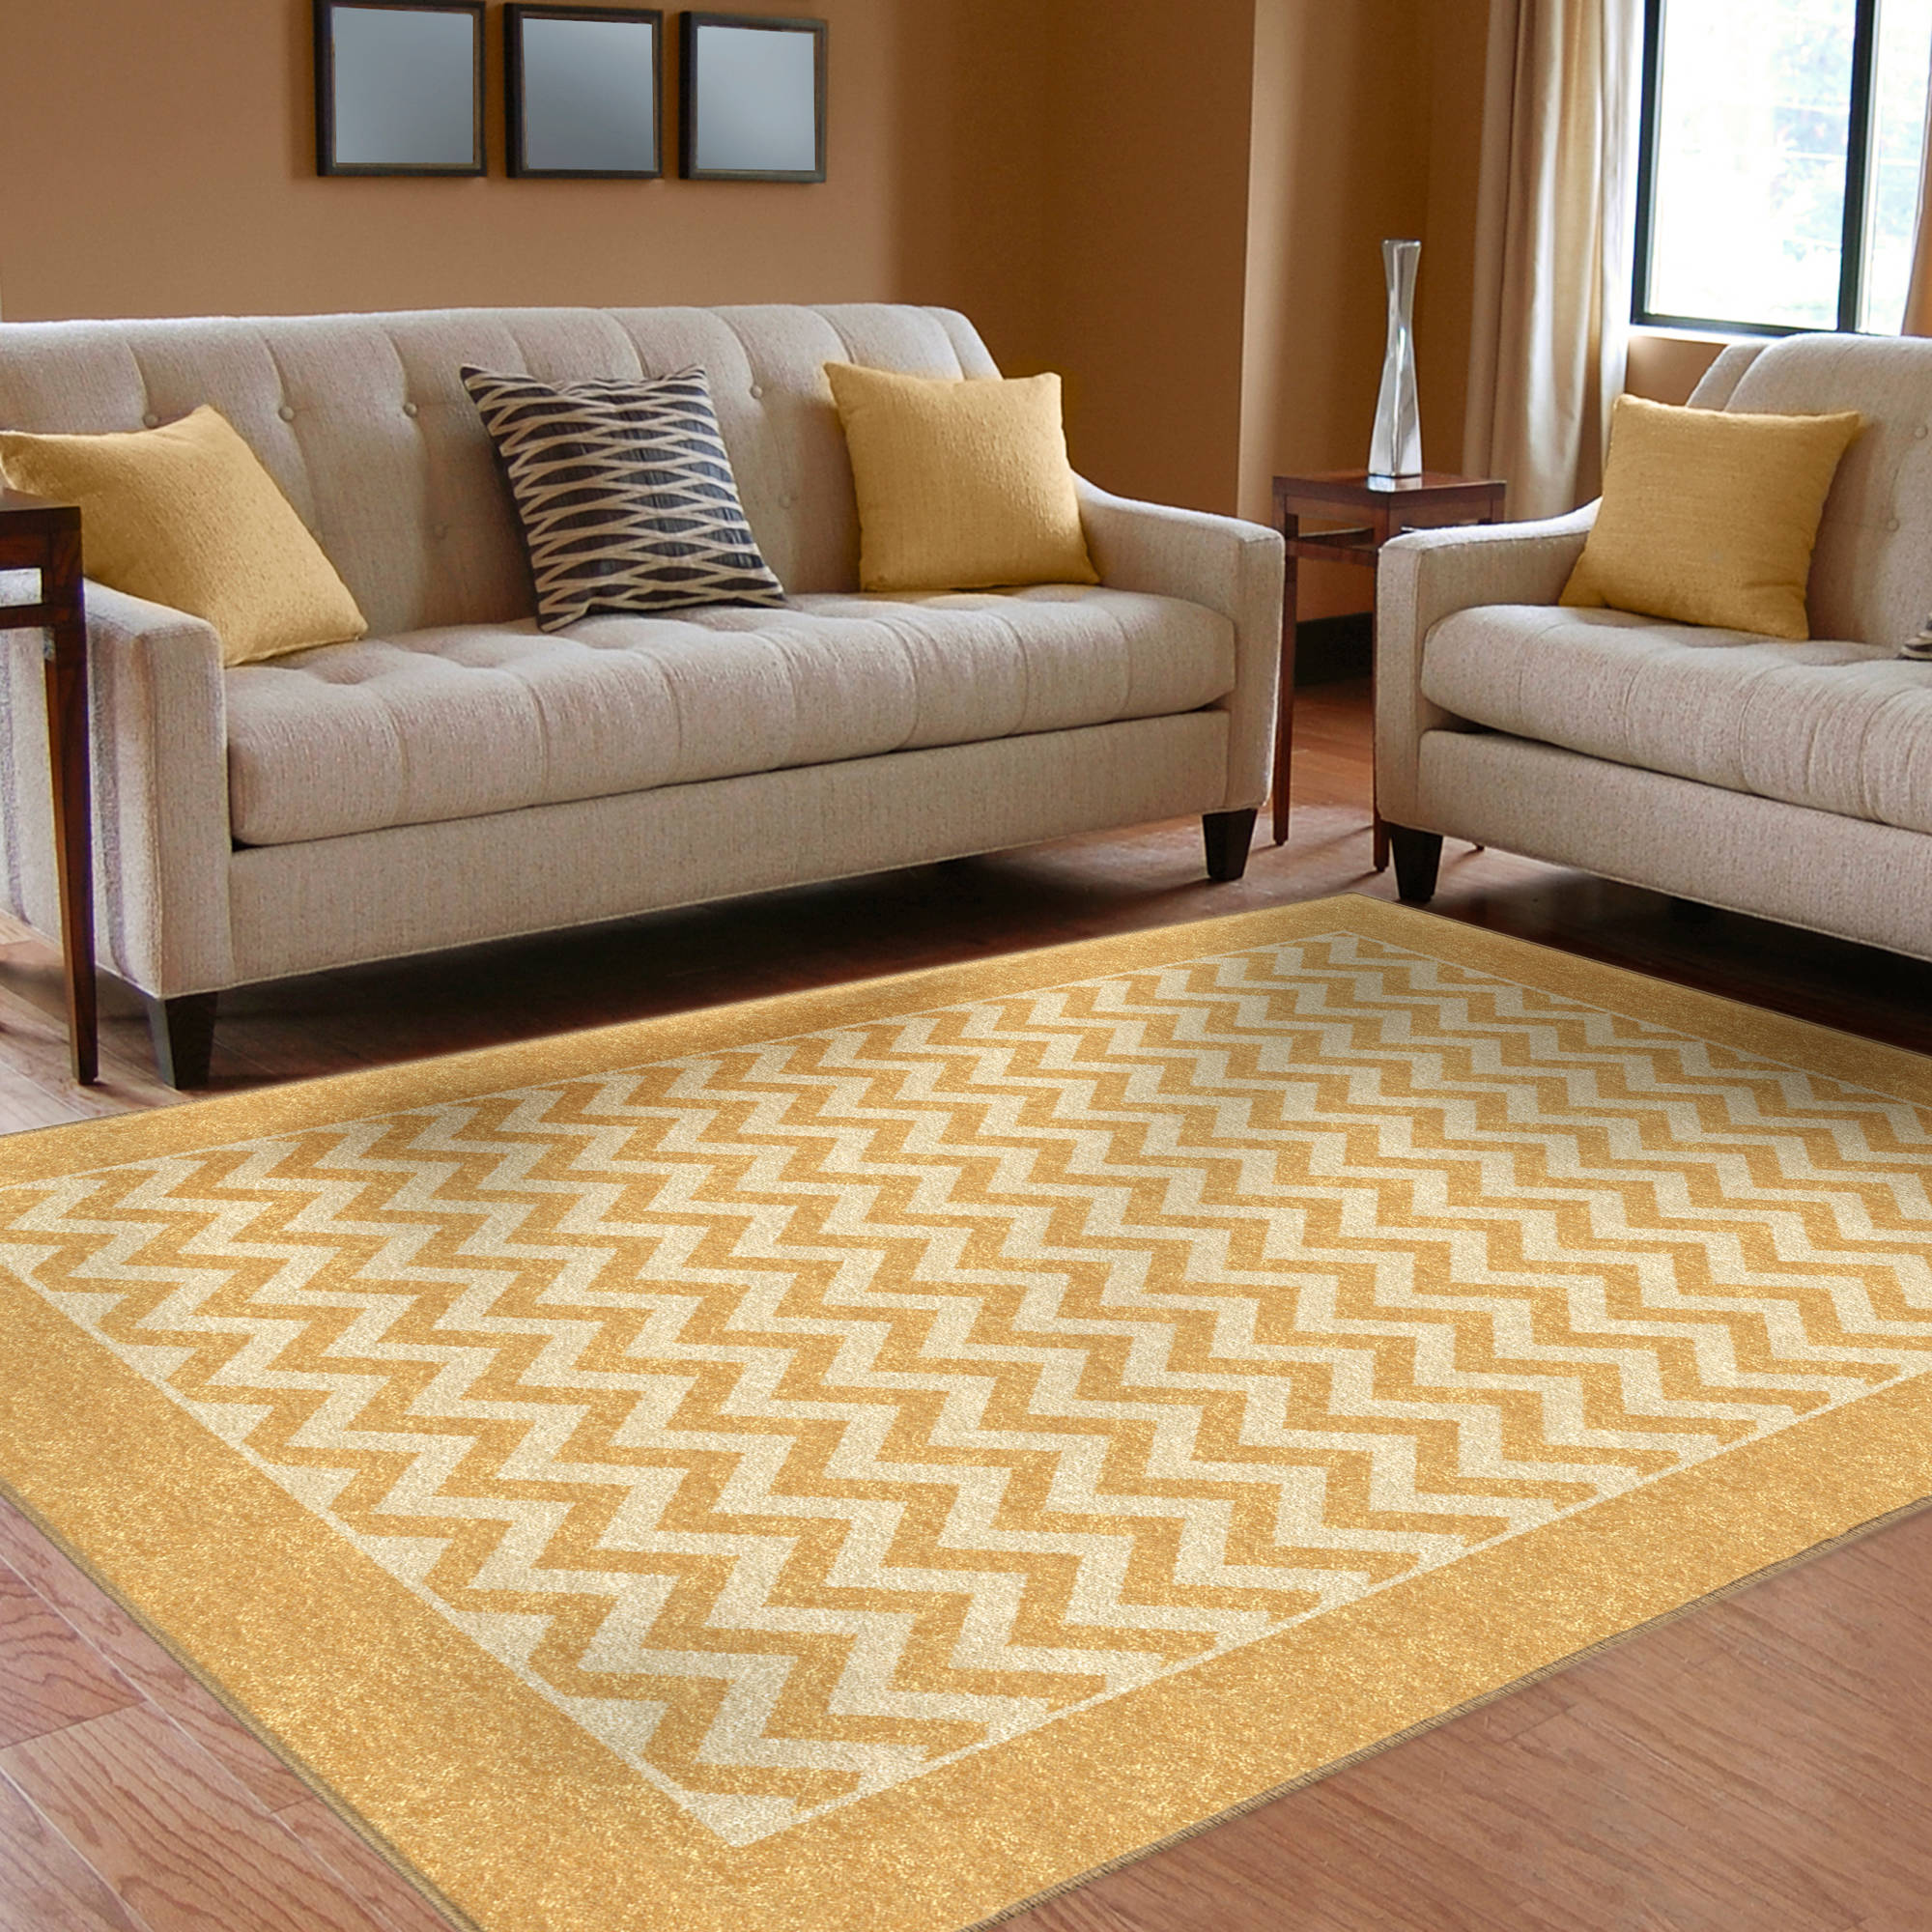 Orian Rugs Indoor/Outdoor Chevron Stripe Gold Area Rug